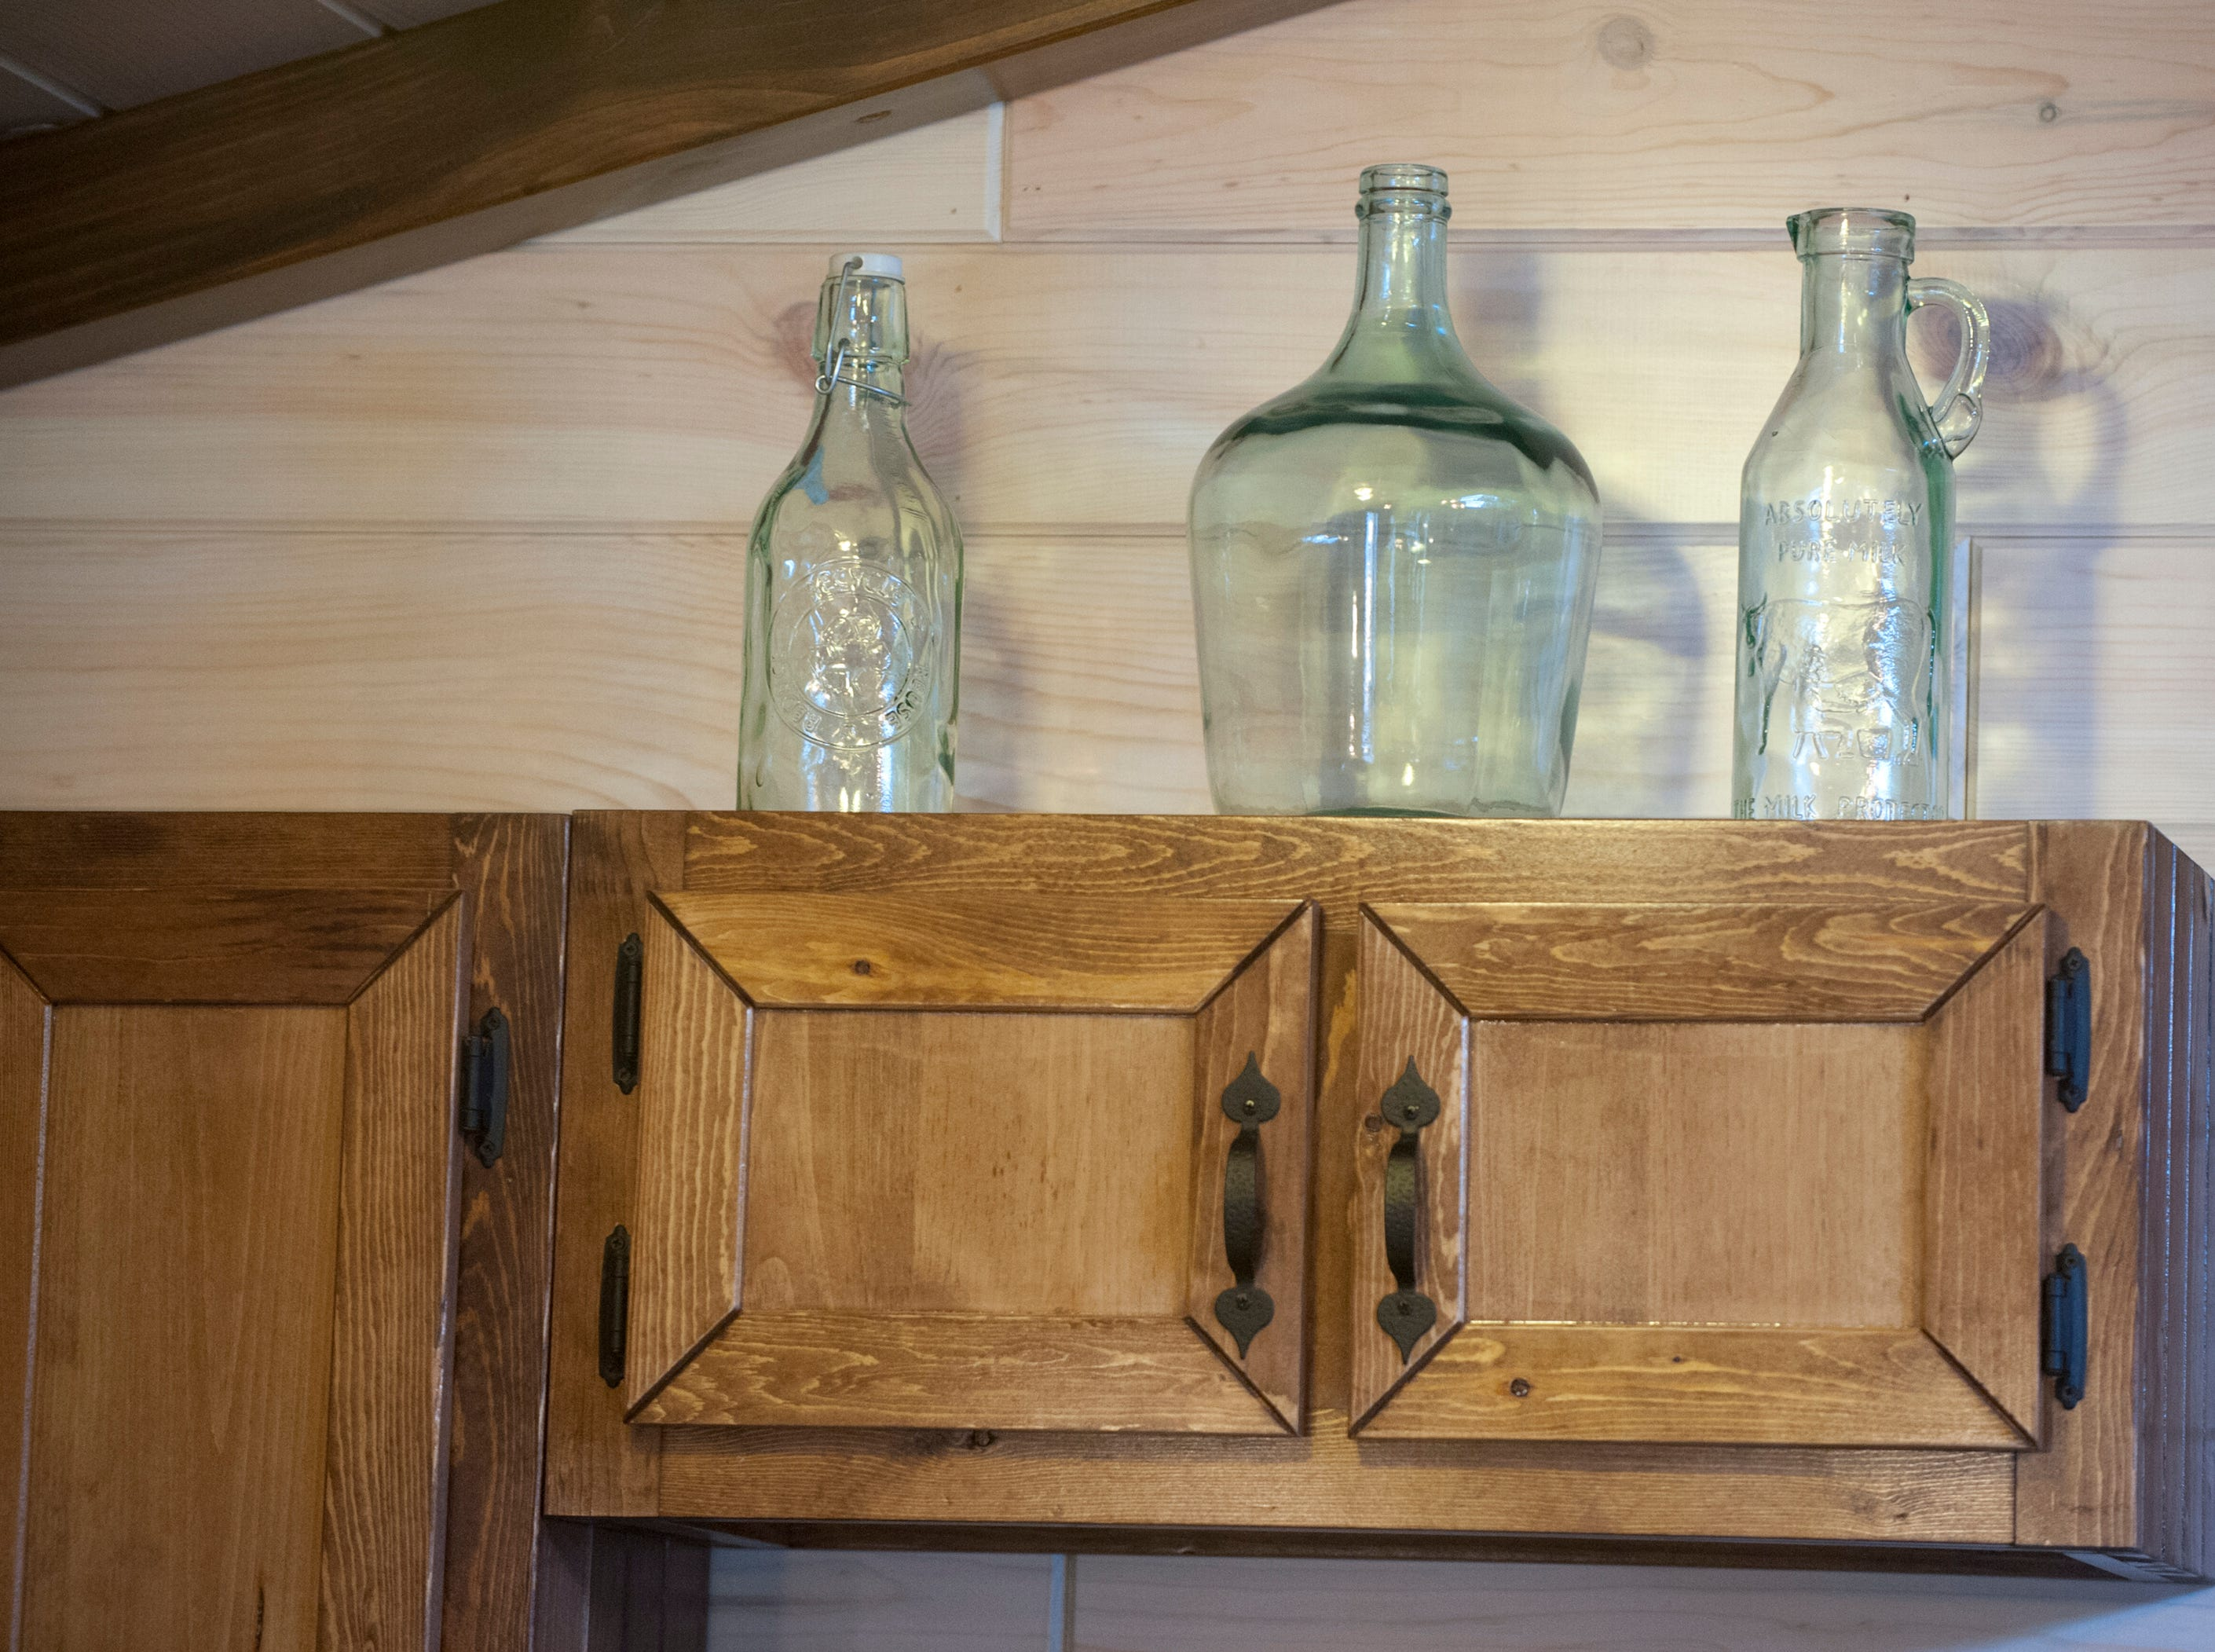 Glass bottles decorate the top of the kitchen cabinets.September 10, 2018